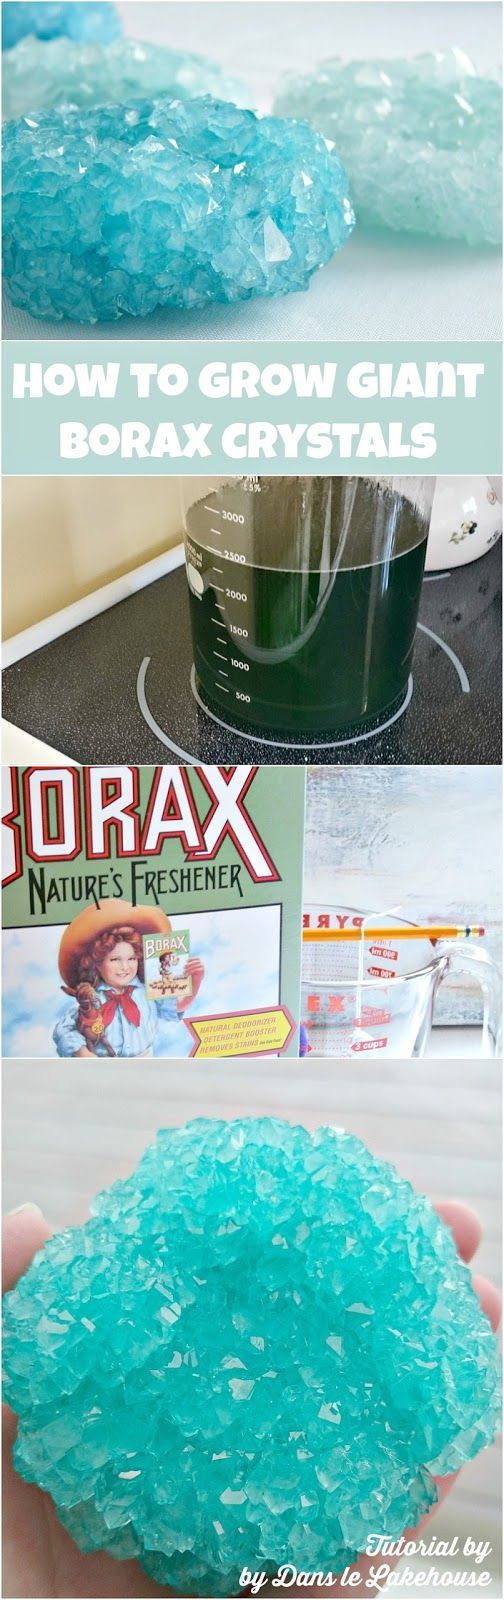 How to grow giant borax crystals. This seems complicated and might not even be possible because of the need for a stove...